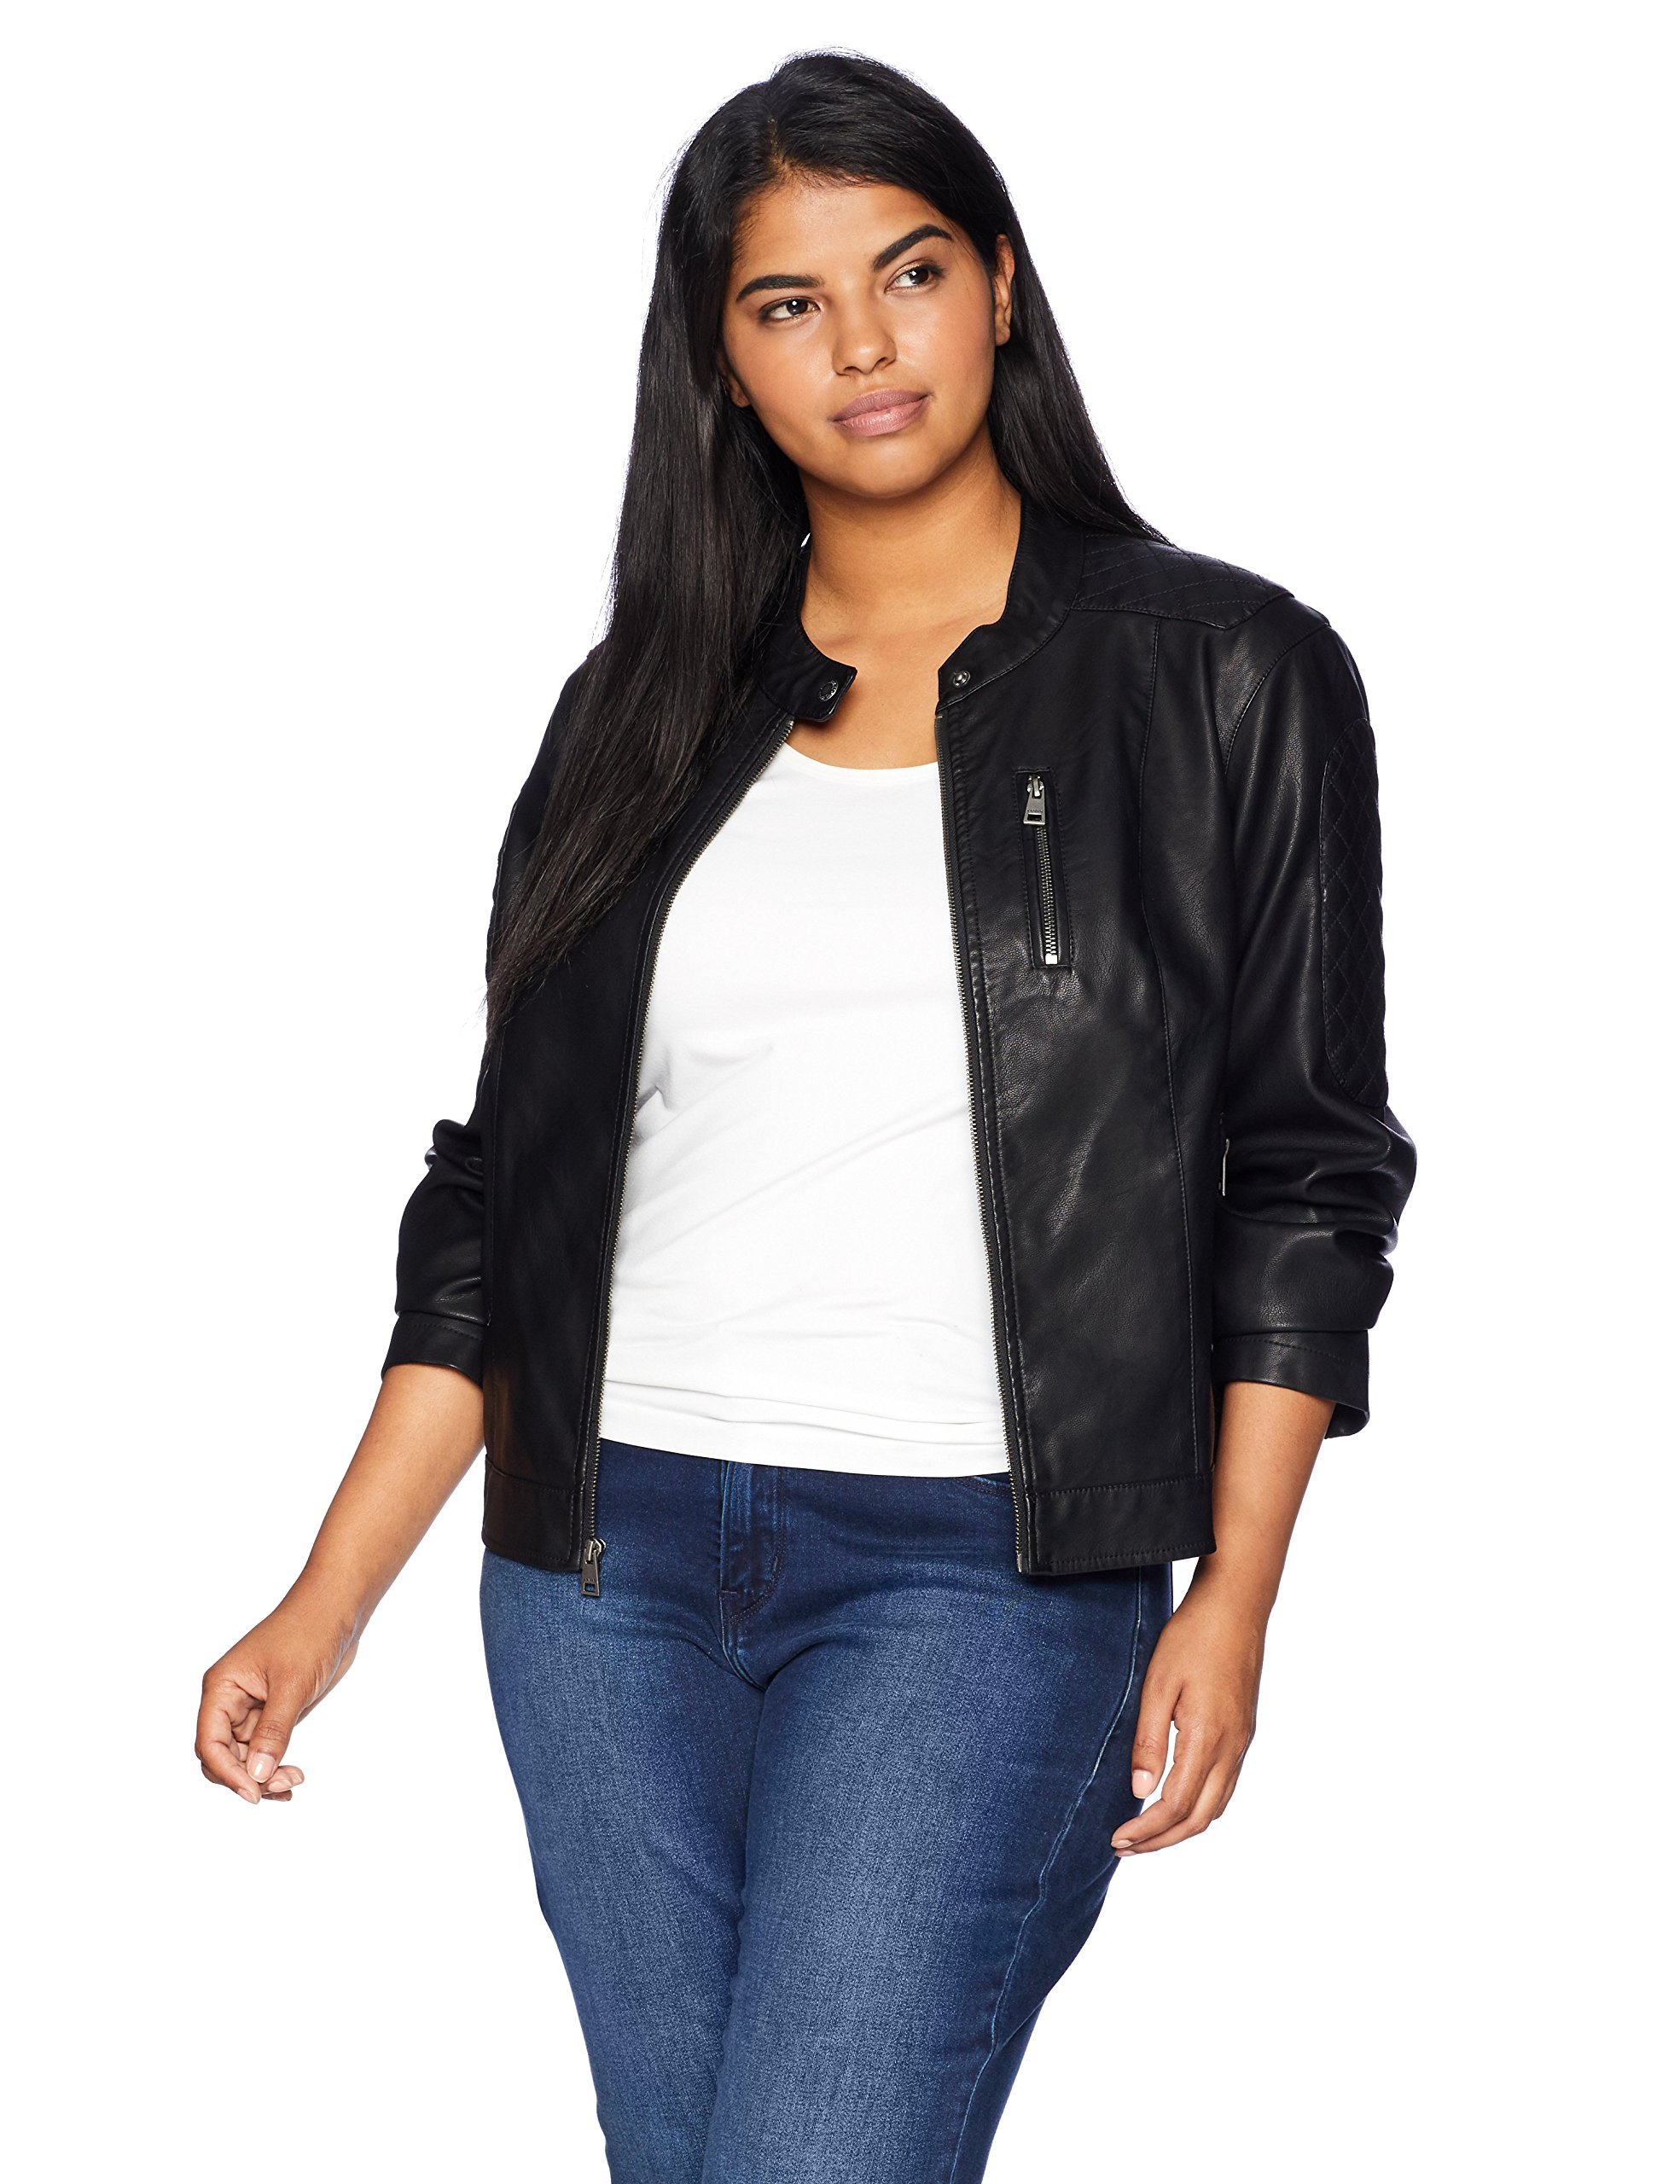 Levi's Size Women's Plus Faux Leather Fashion Quilted Racer Jacket, Black, 1X by Levi's